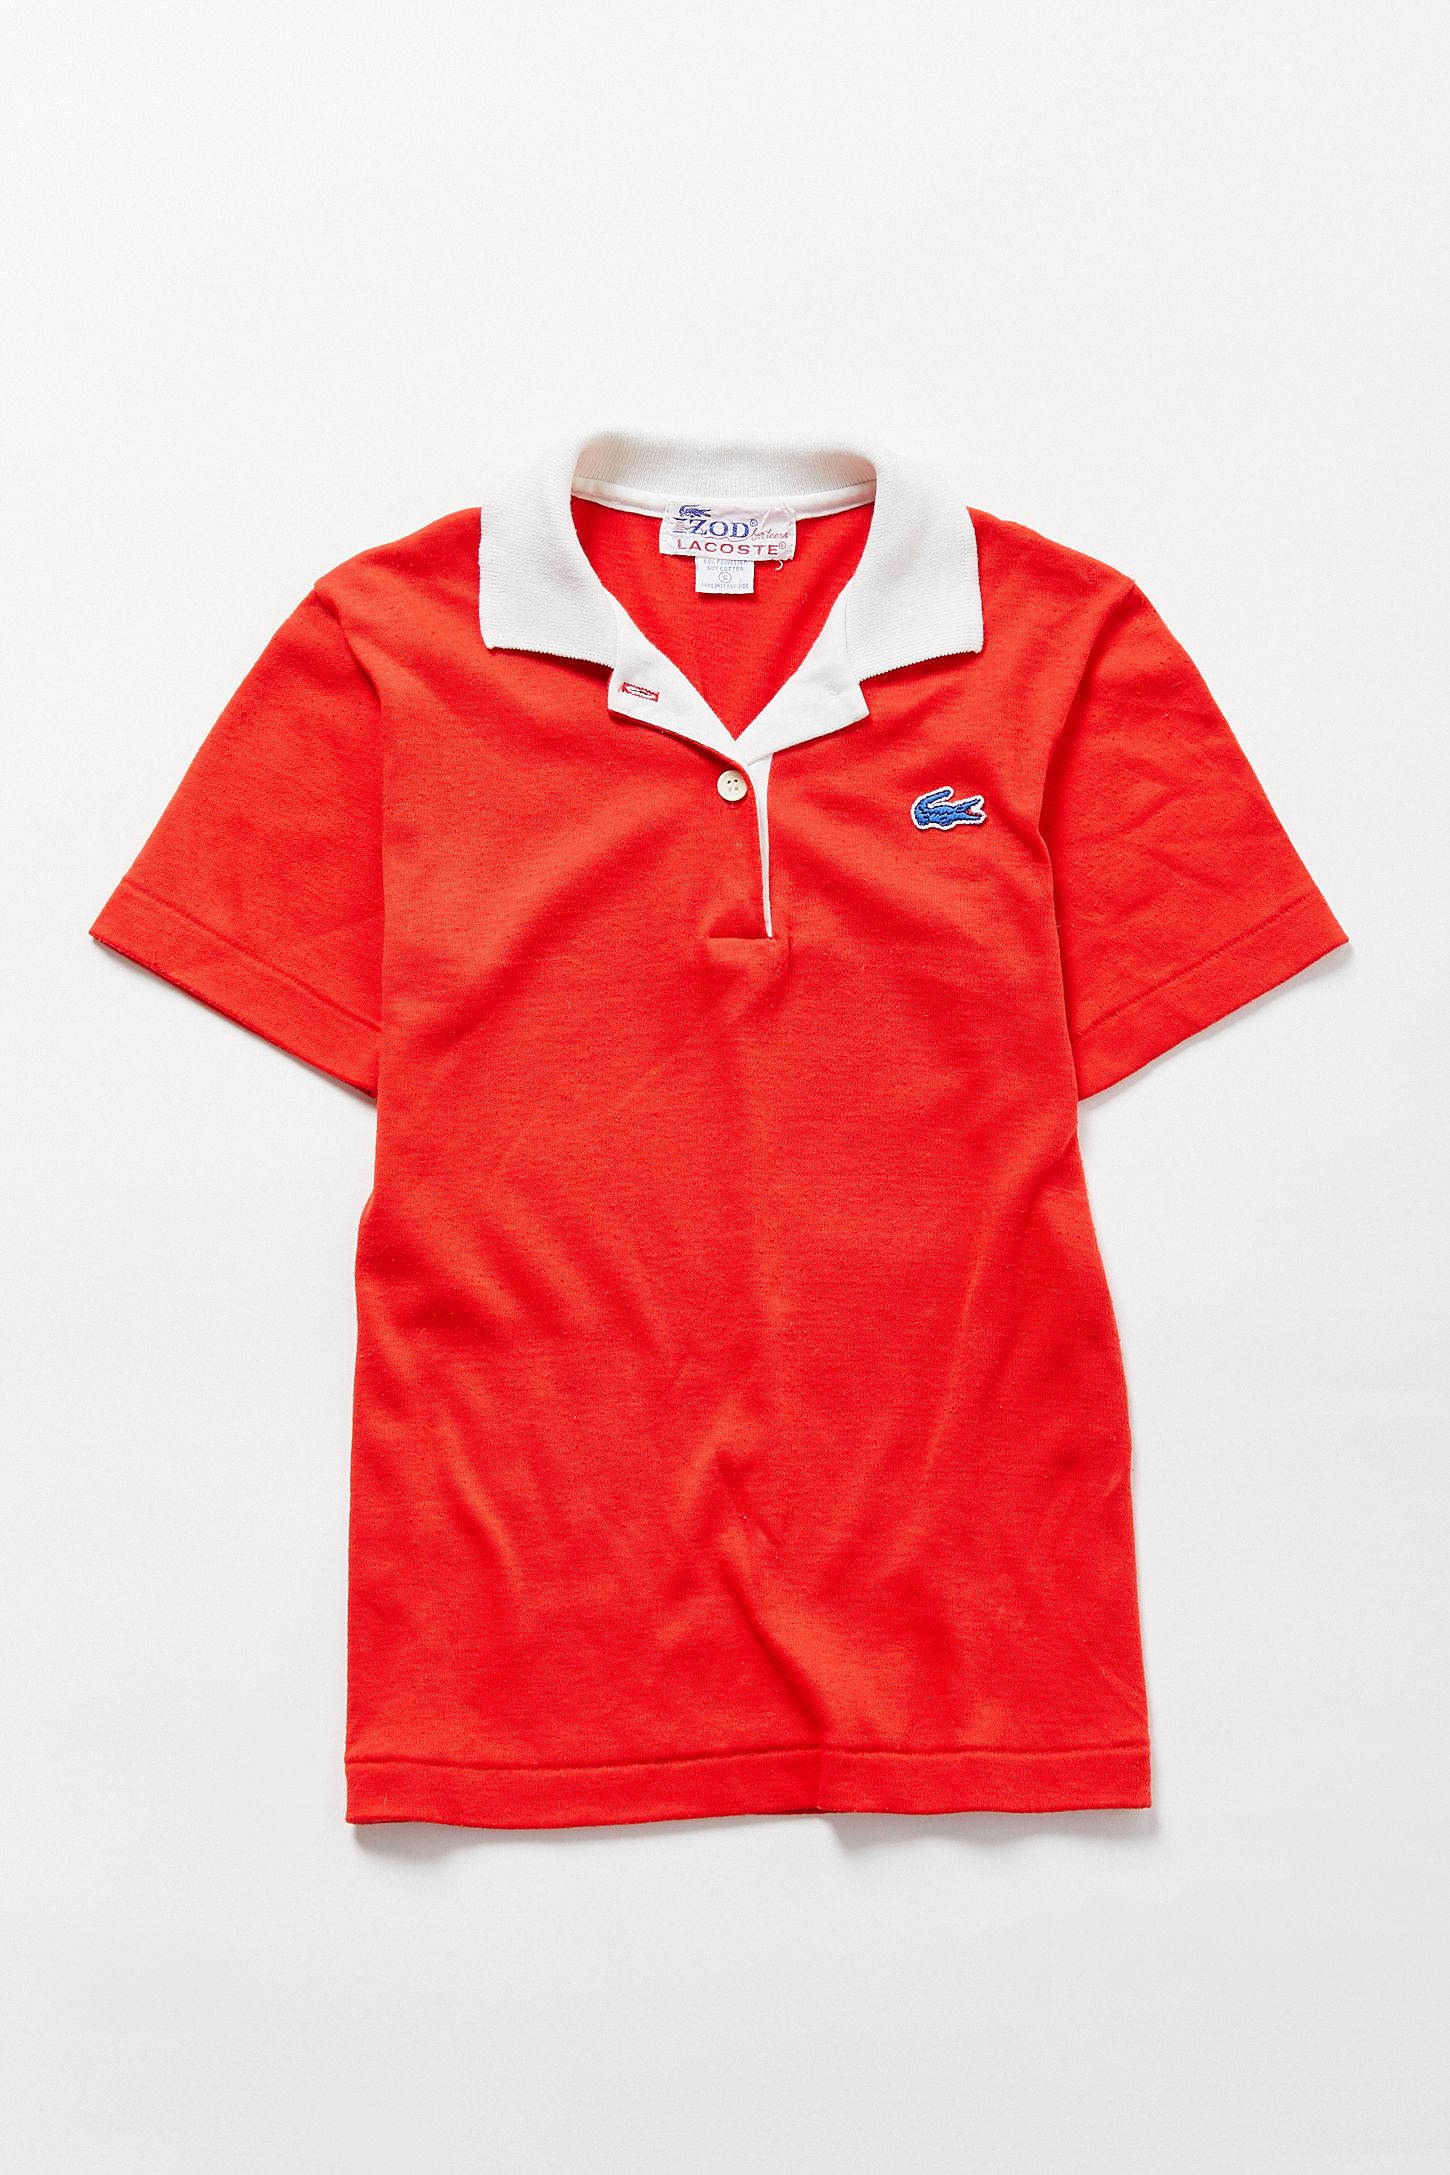 Vintage Lacoste Red Polo Shirt Urban Outfitters